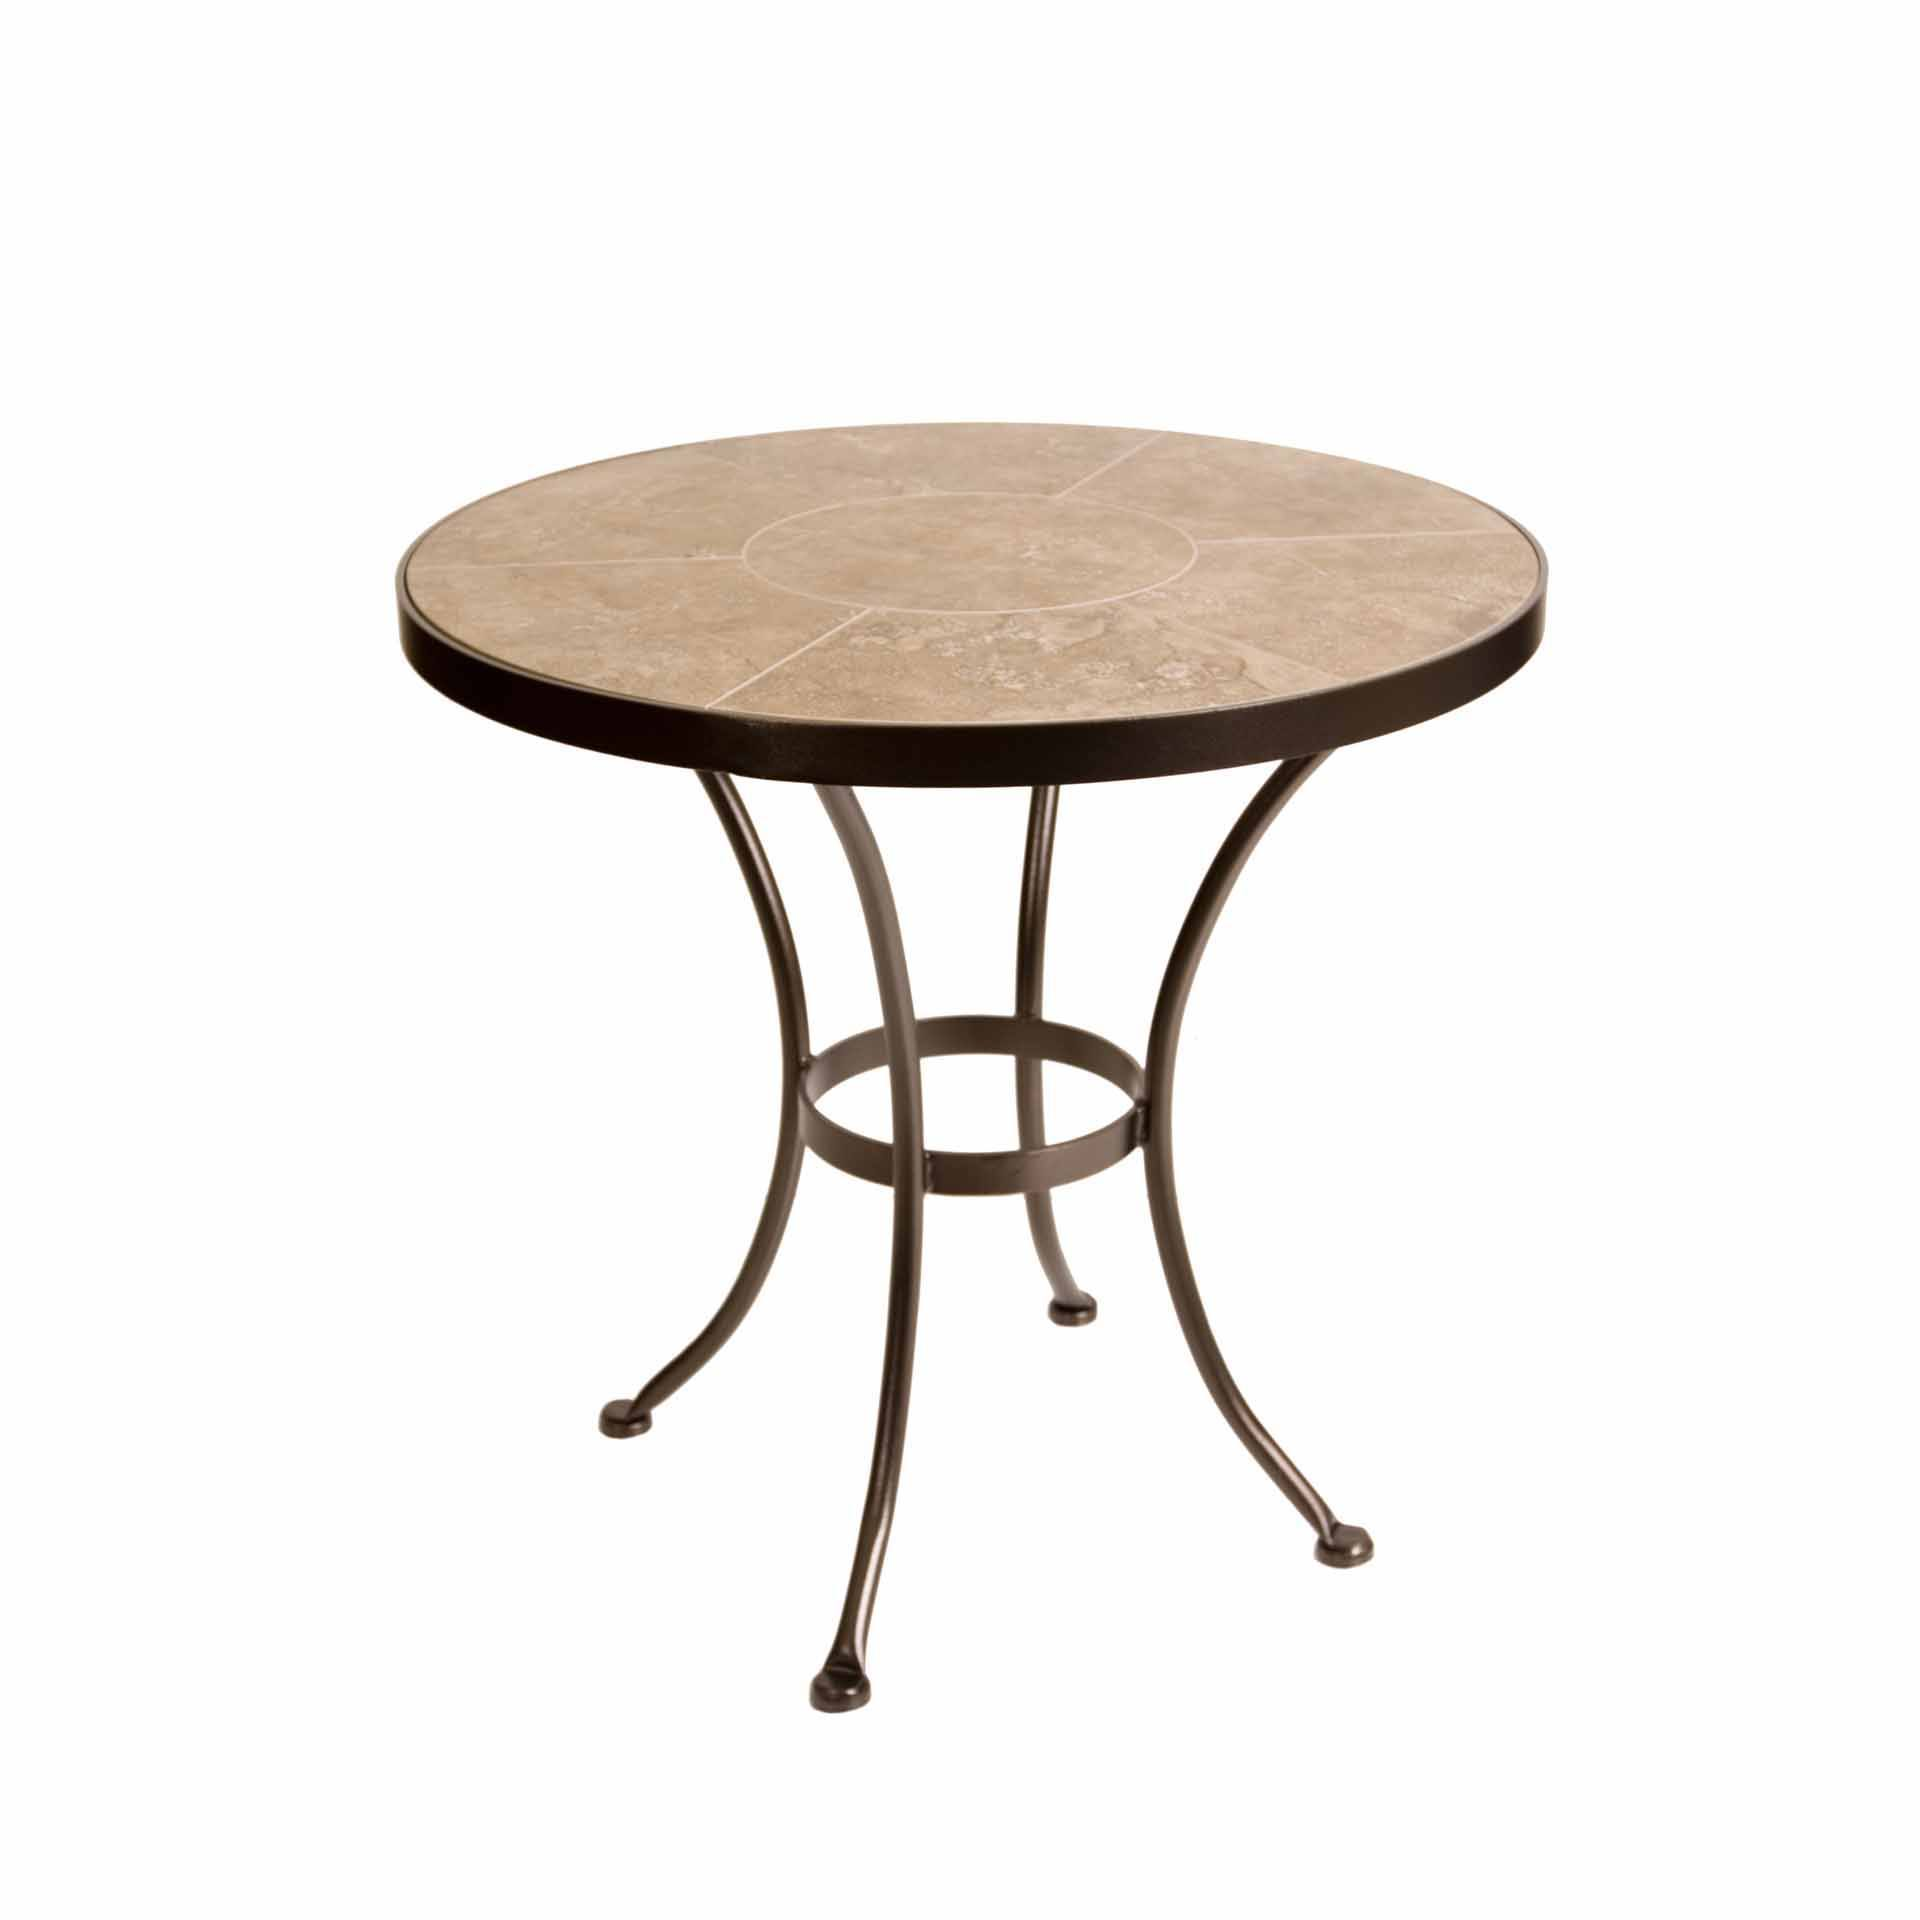 Ow Lee 30 Quot Round Porcelain Dining Table Leisure Living